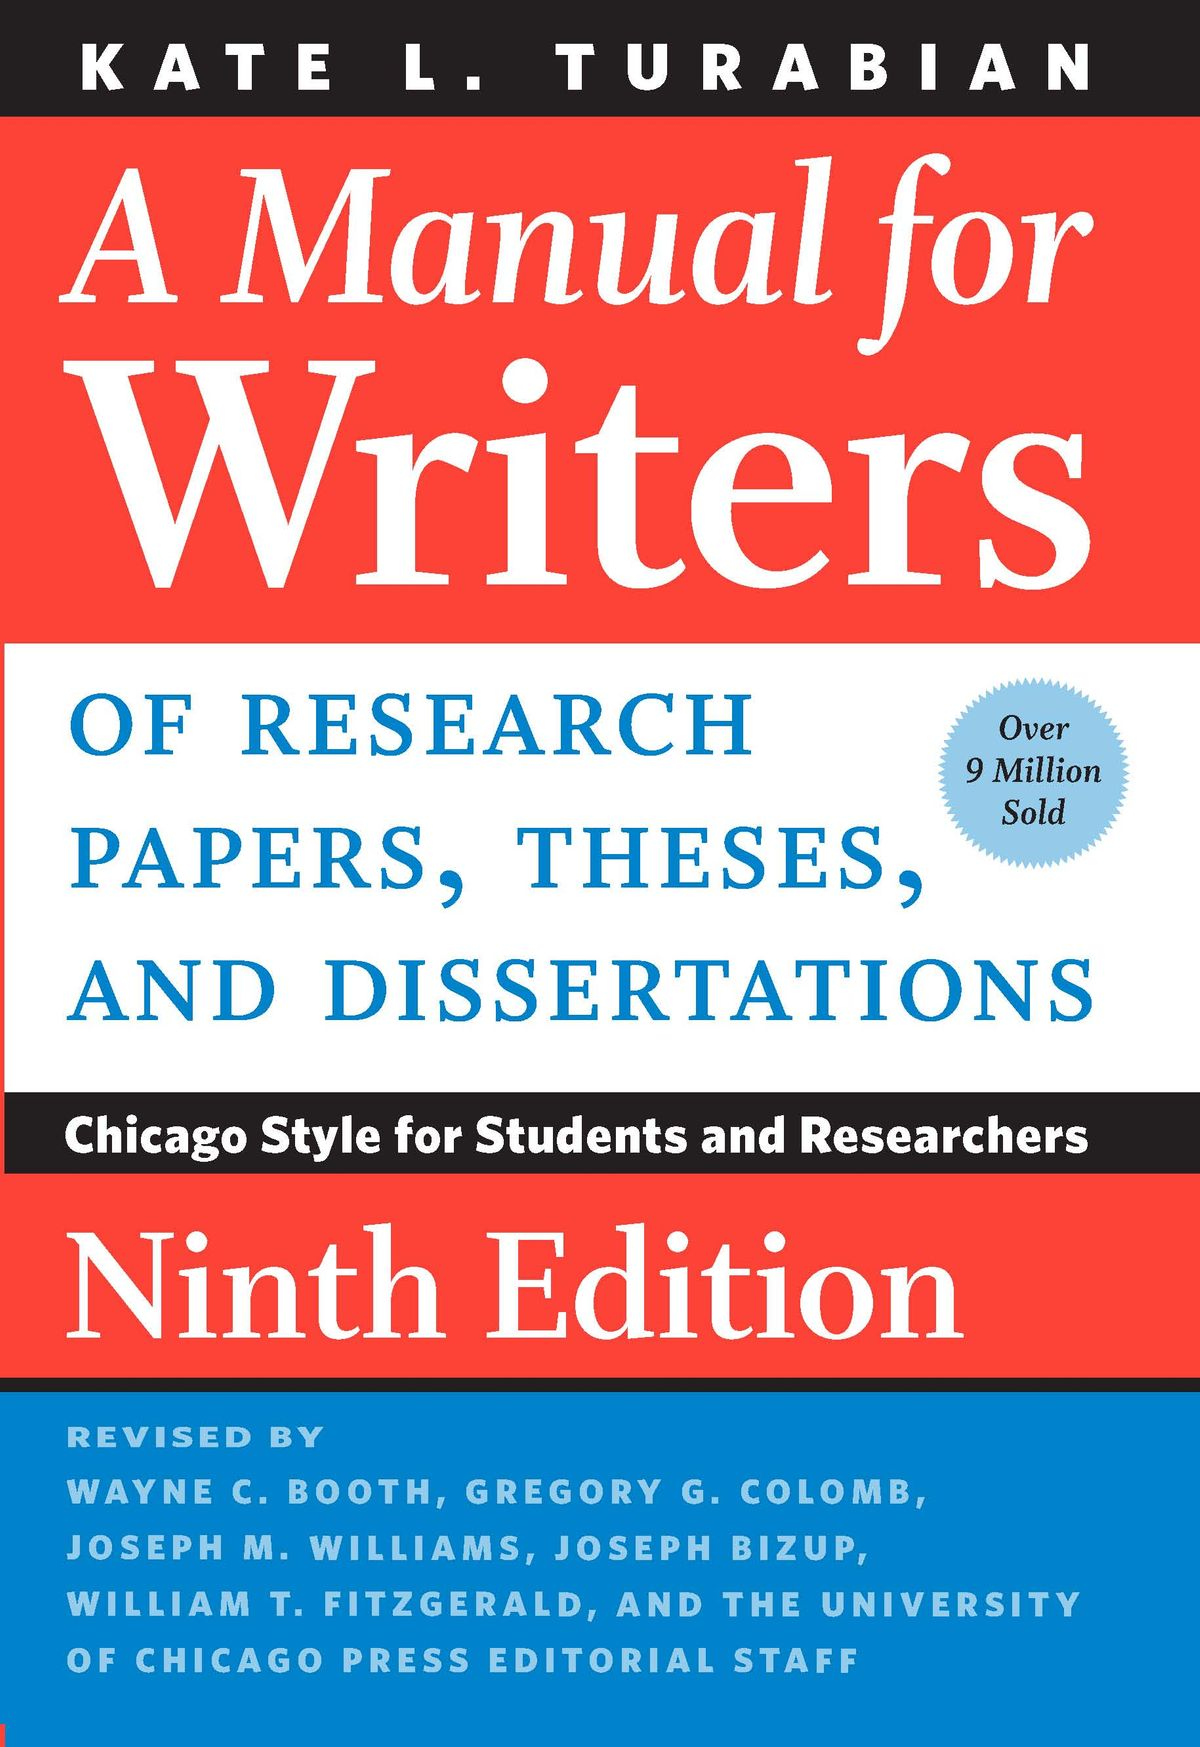 001 Research Paper Manual For Writers Of Papers Theses And Dissertations Turabian Pdf Ninth Wonderful A Full